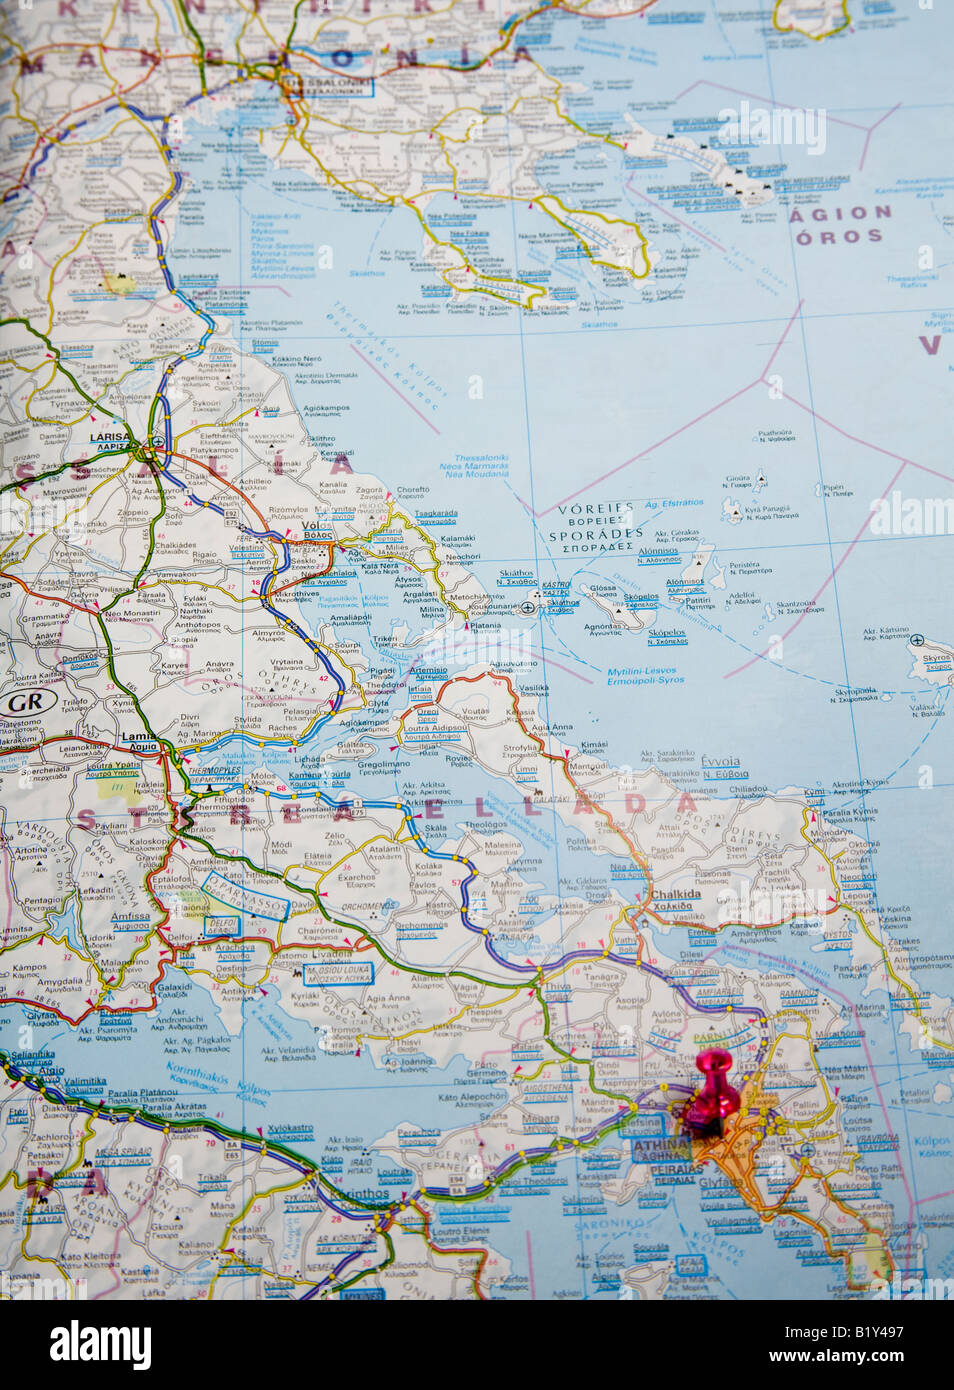 Road Map Of Athens Greece Europe Stock Photo 18421123 Alamy